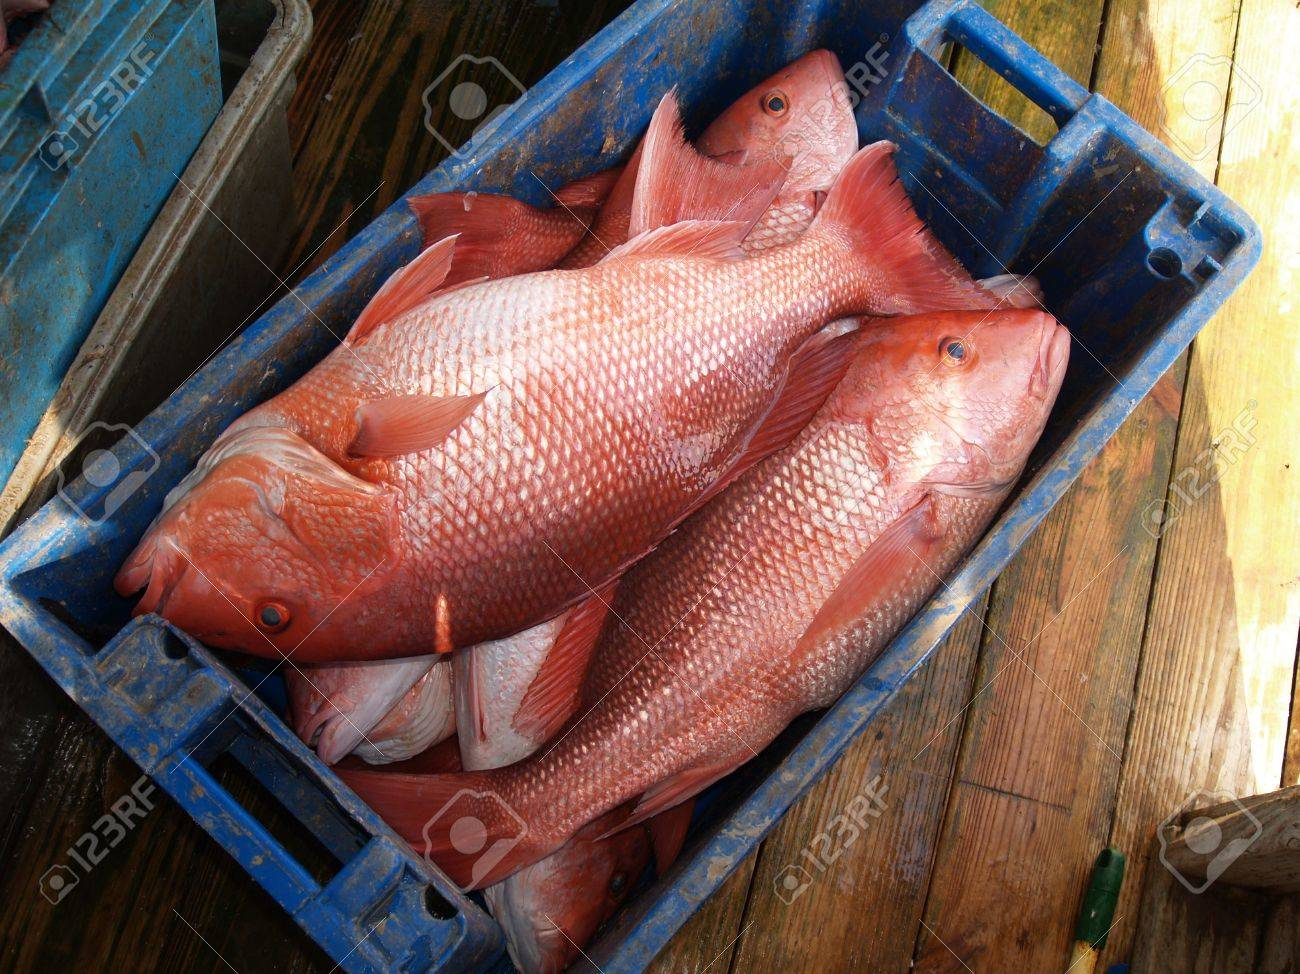 A days catch of large red snapper in a blue crate sitting on a dock which was caught in the Florida Gulf. Stock Photo - 5116011